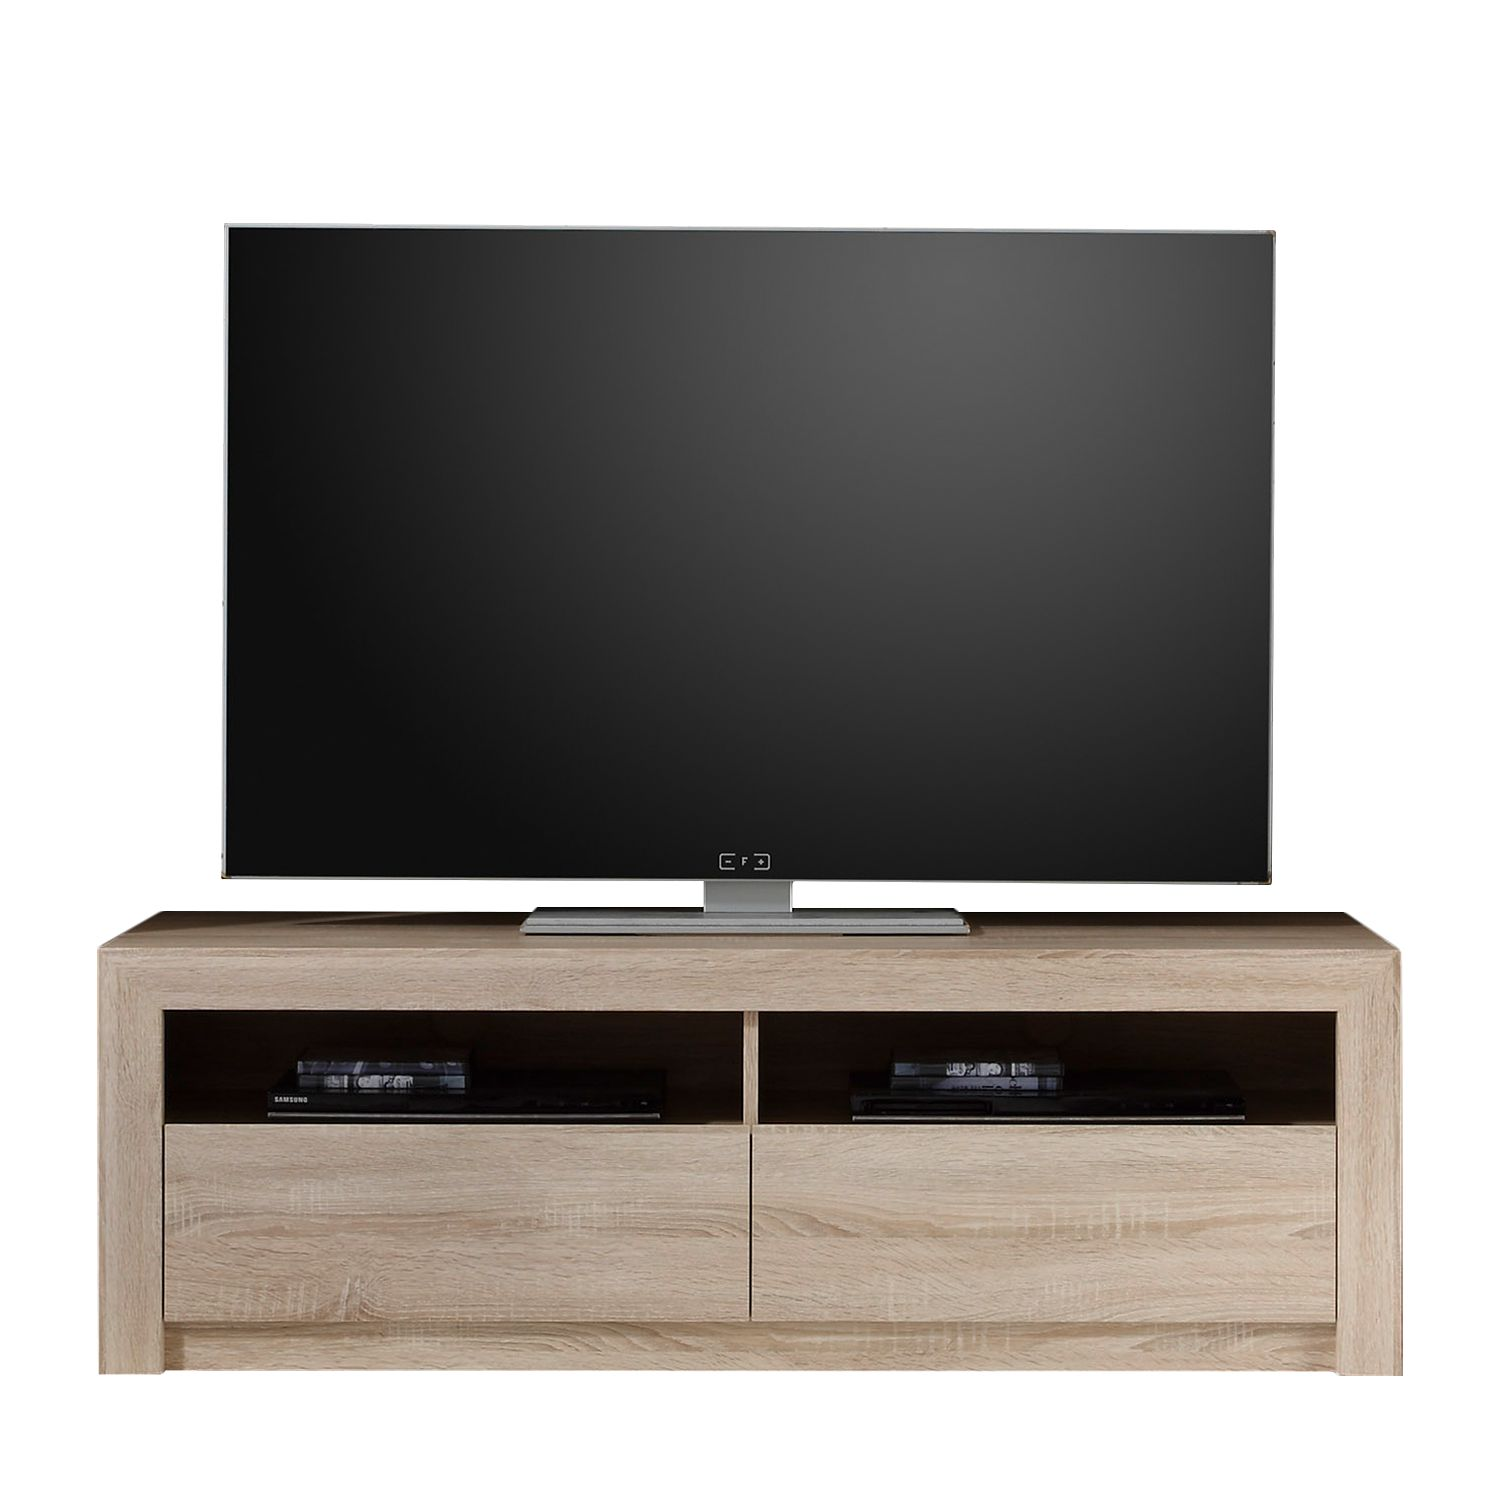 Meuble Tv Le Bon Coin Meuble Tv Sony Meuble Tv 70 Cm Largeur Ghost Design 2000 Meuble Support Tv 32 ŕ 63 Meuble Tv Hifi Mobel Lowboard Moderne Wohnung